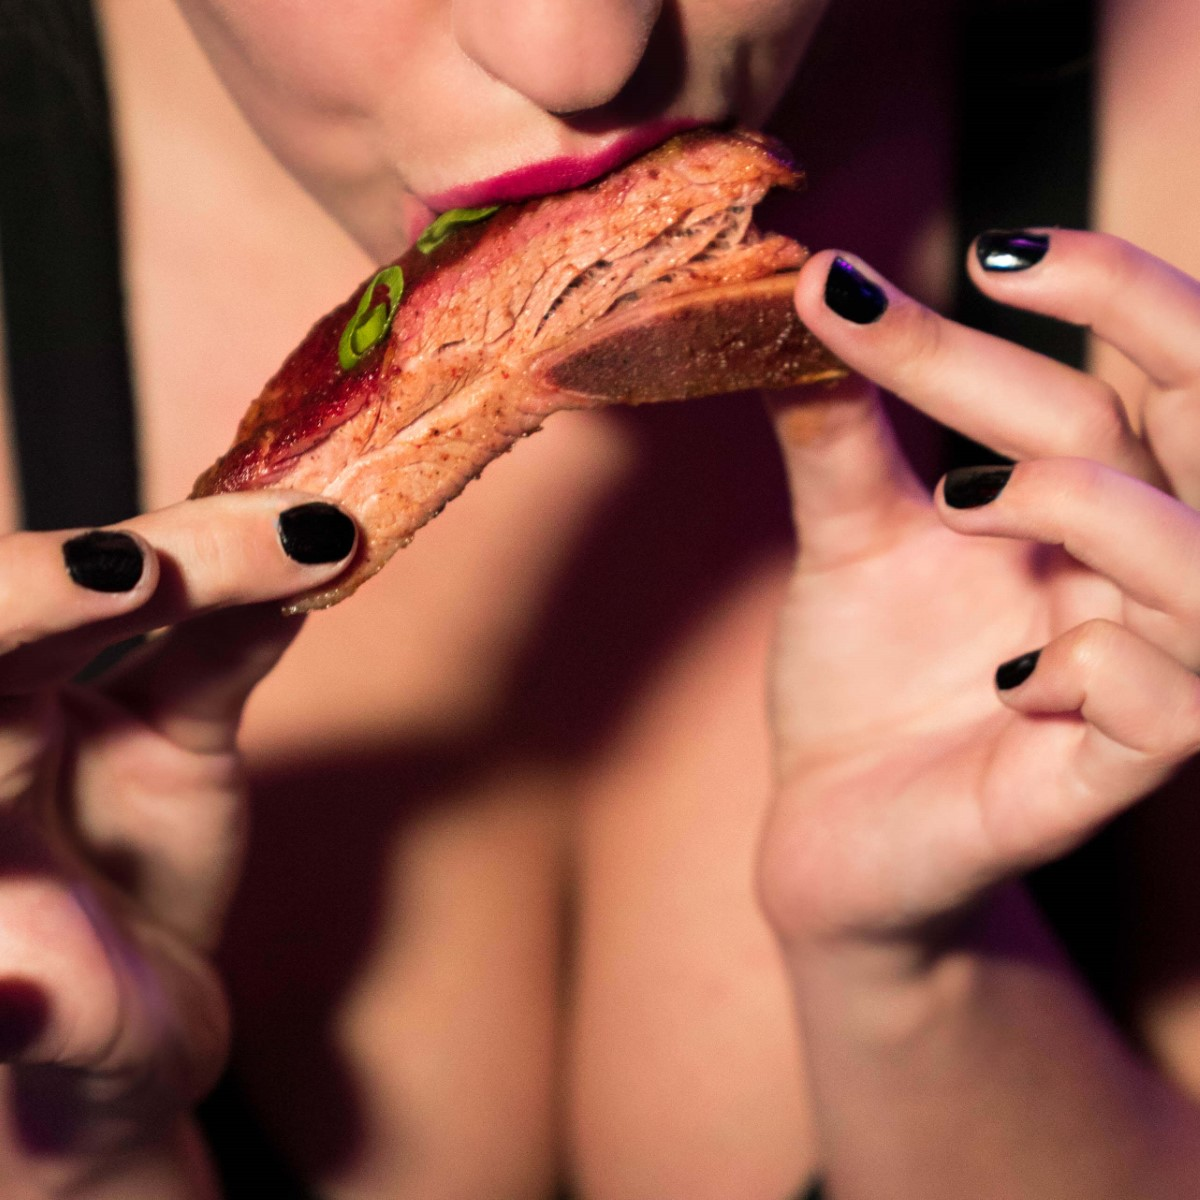 Sexy woman biting into a tbone steak at Primal Cut Steakhouse